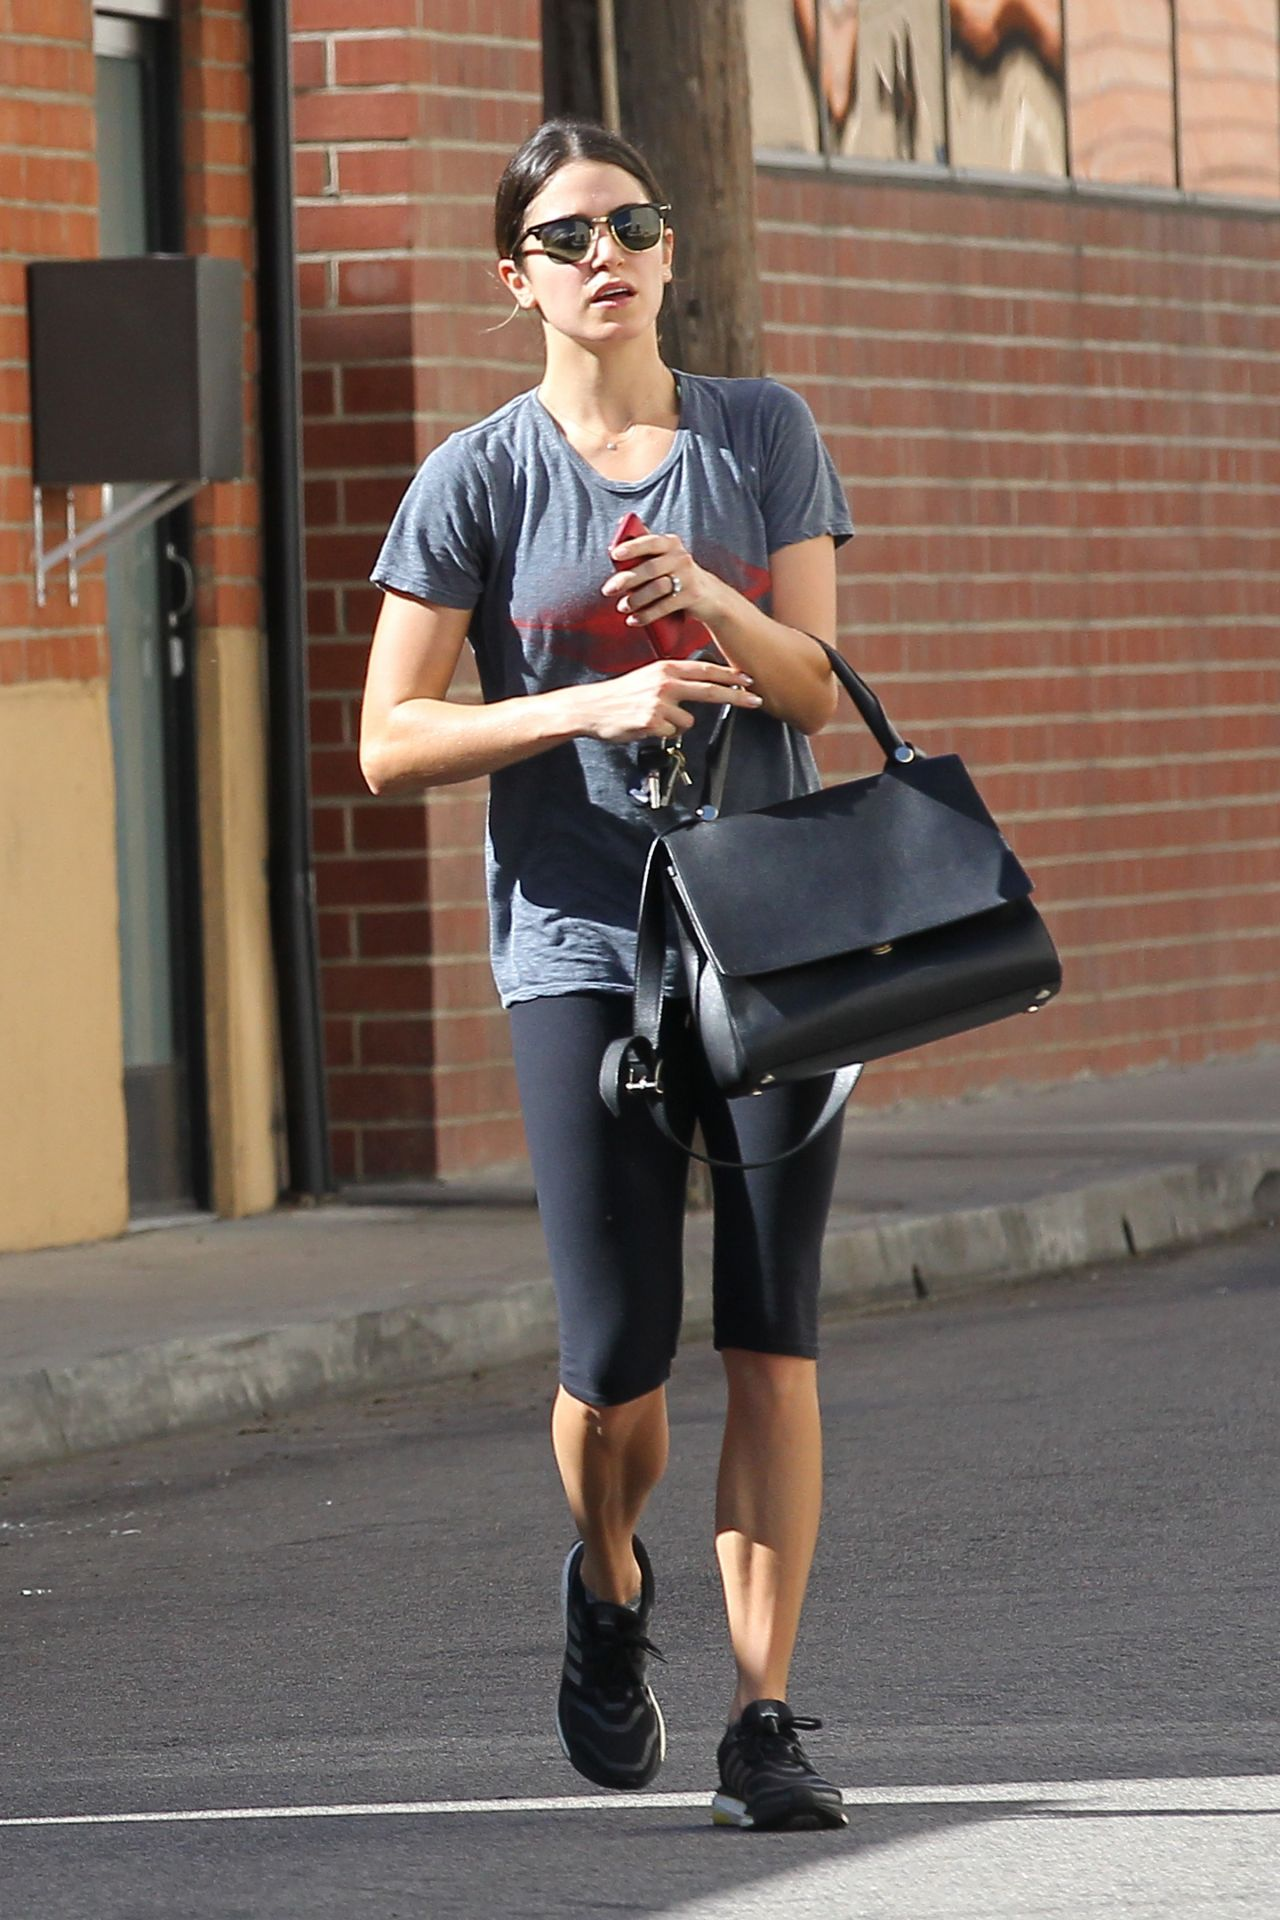 Nikki Reed Gym Style - Heads Out of the Gym Following a Morning Workout - Los Angeles, February 2014